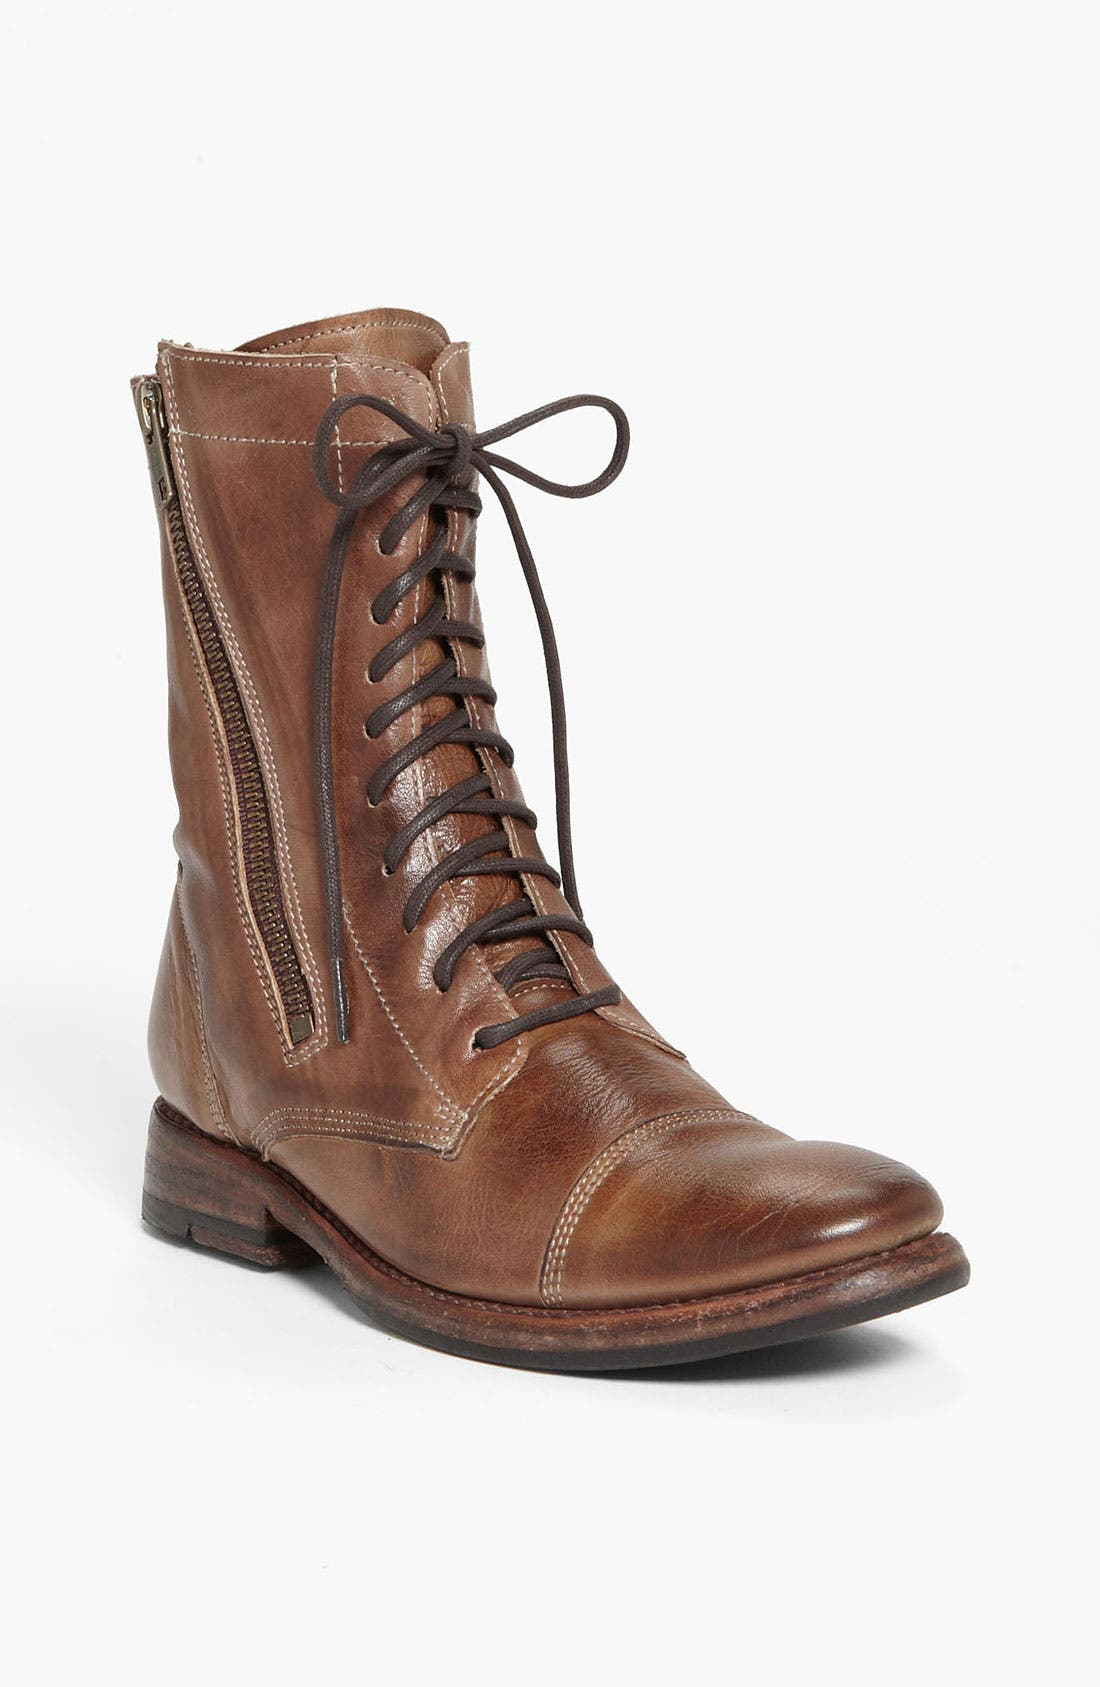 Main Image - Bed Stu 'Tabor' Lace-Up Boot